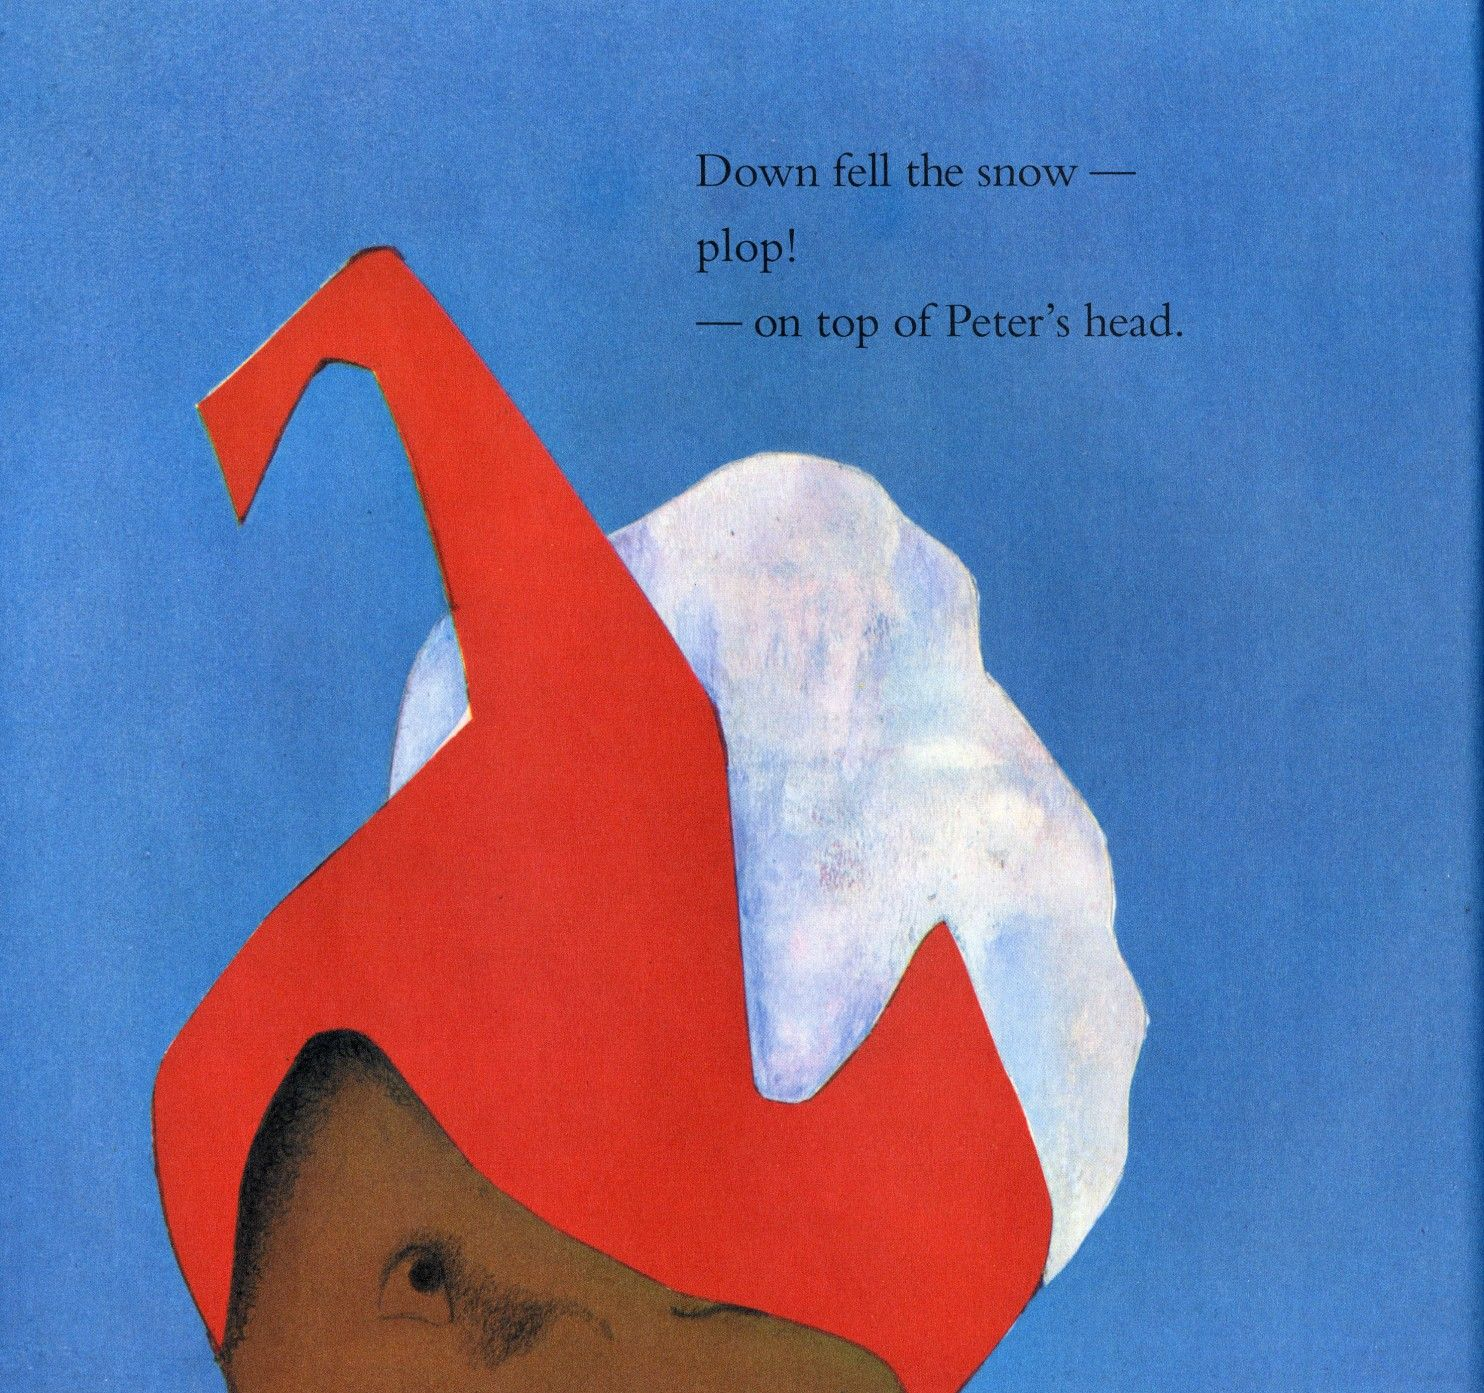 The Snowy Day First Picture Book With Black Child As